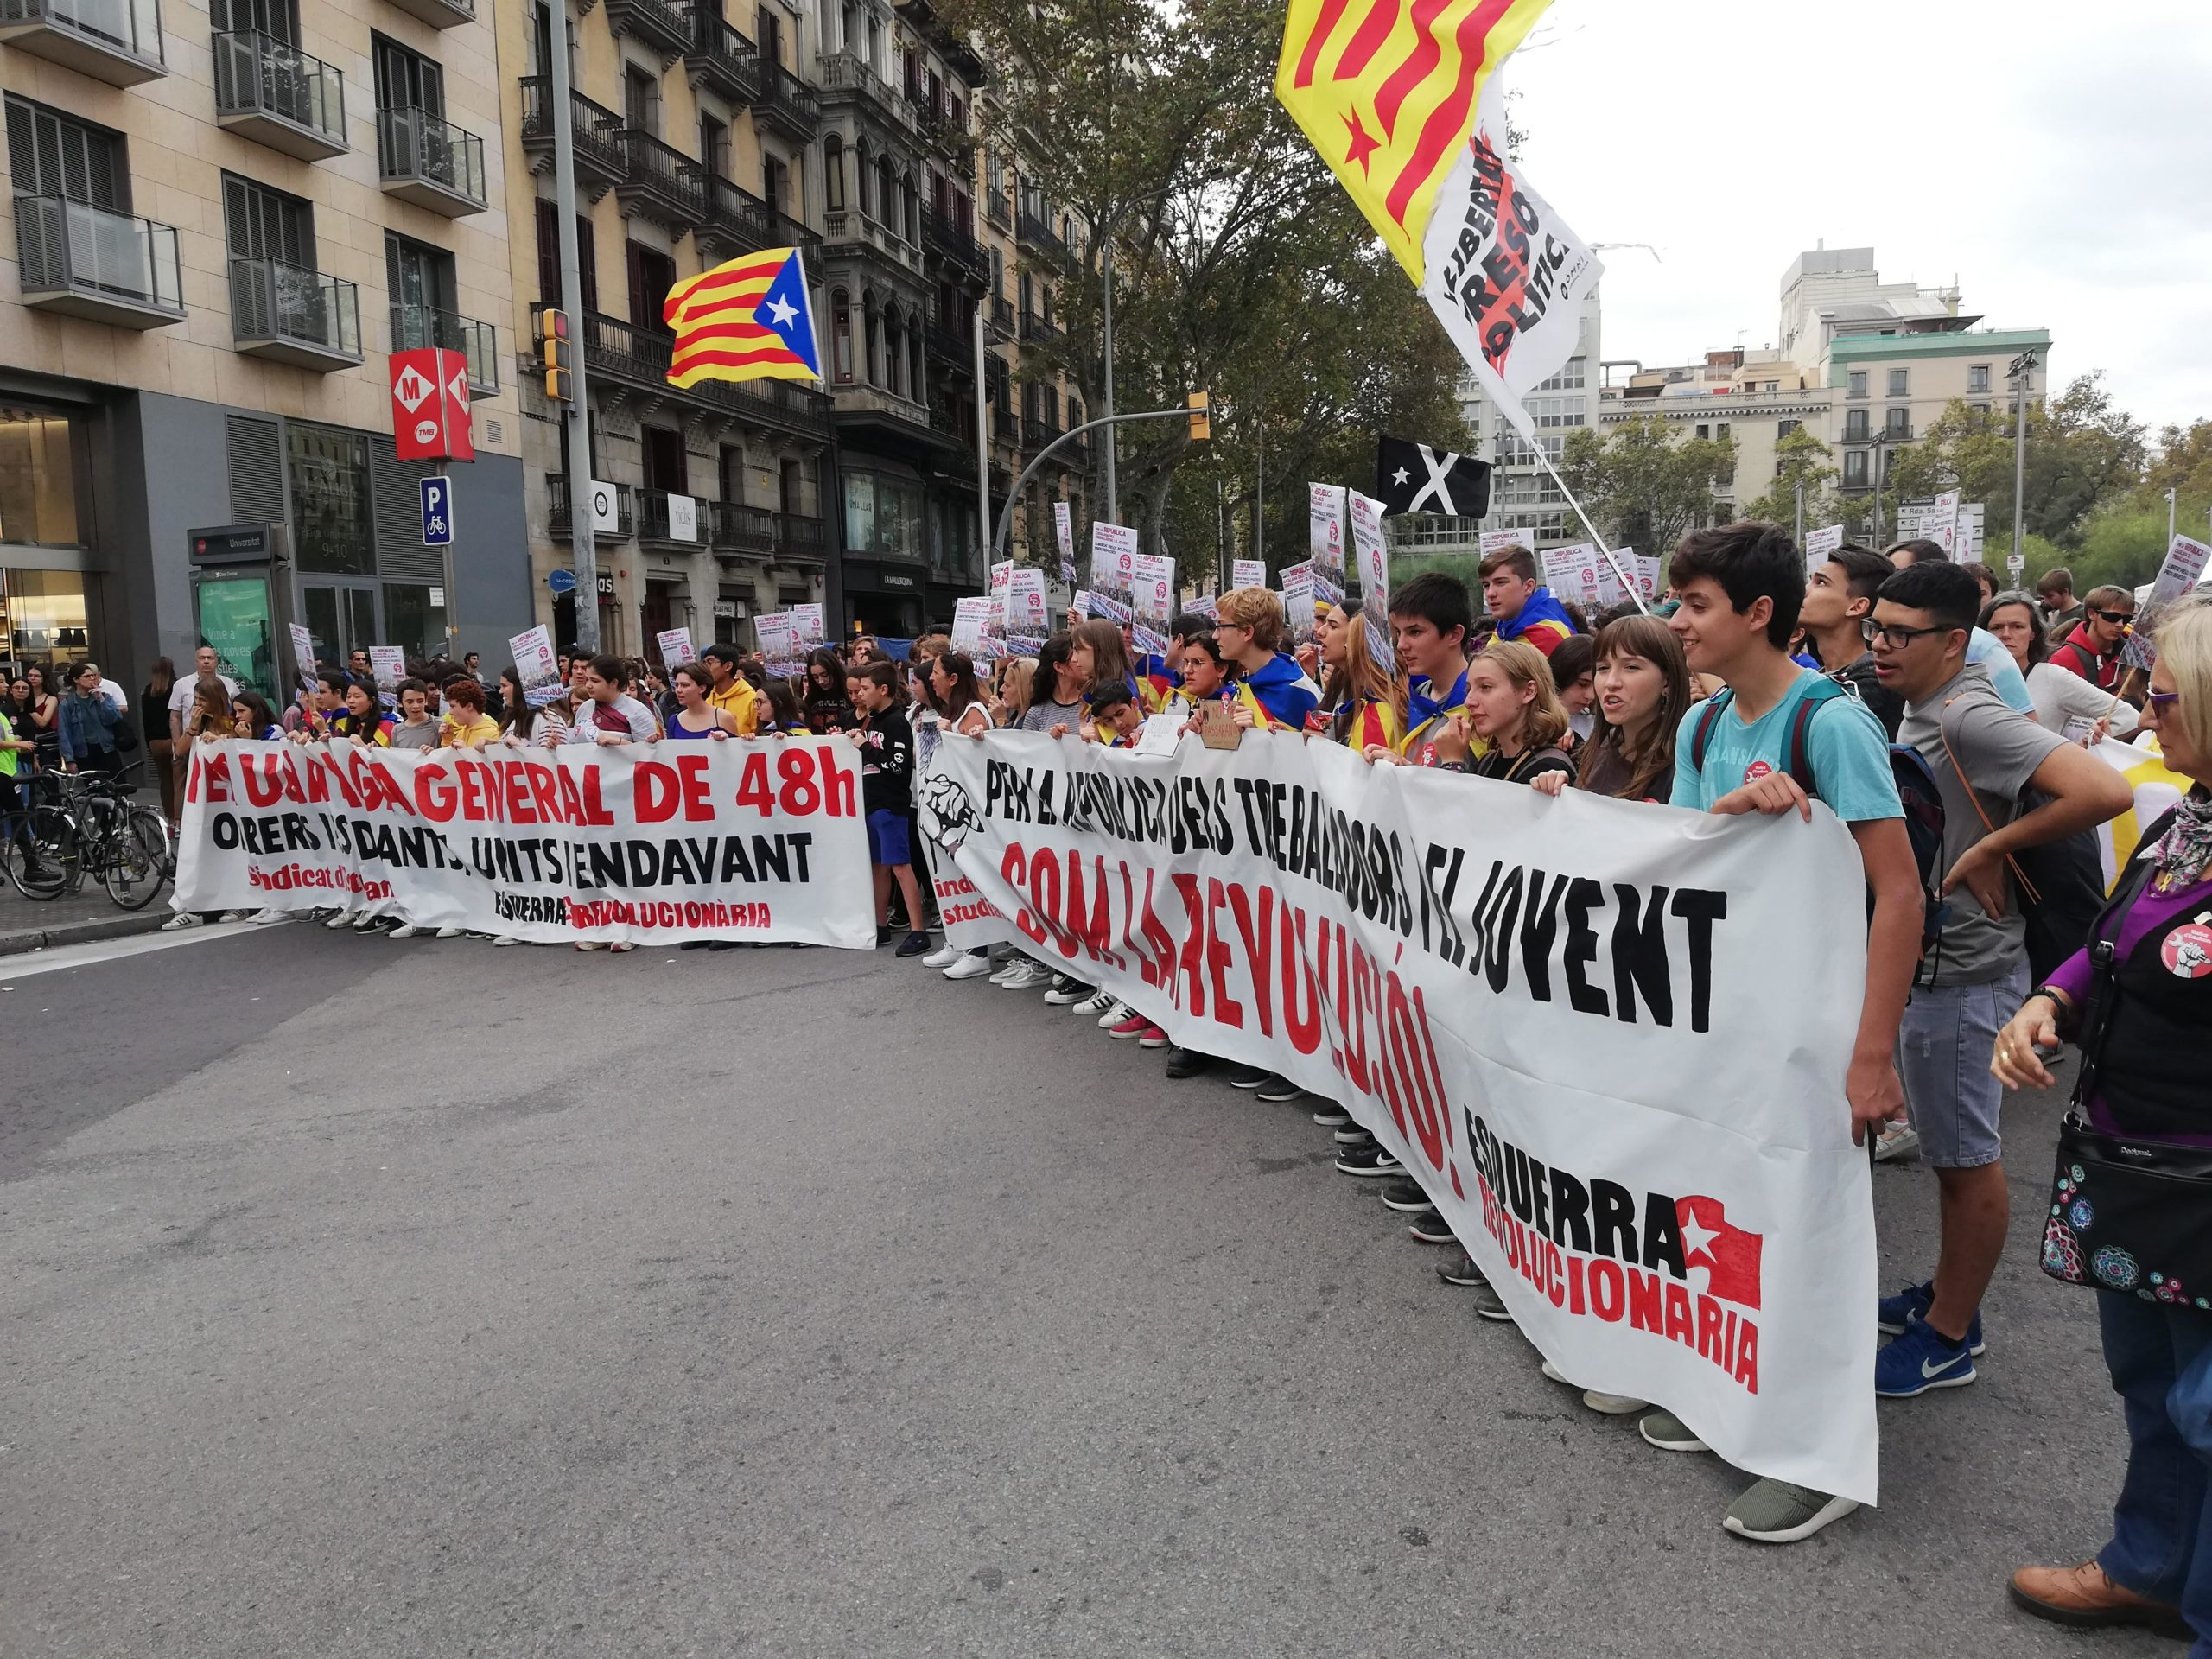 El tall de la Gran Via al seu pas per la plaça Universitat, al costat de l'acampada d'estudiants / Europa Press (David Zorrakino)